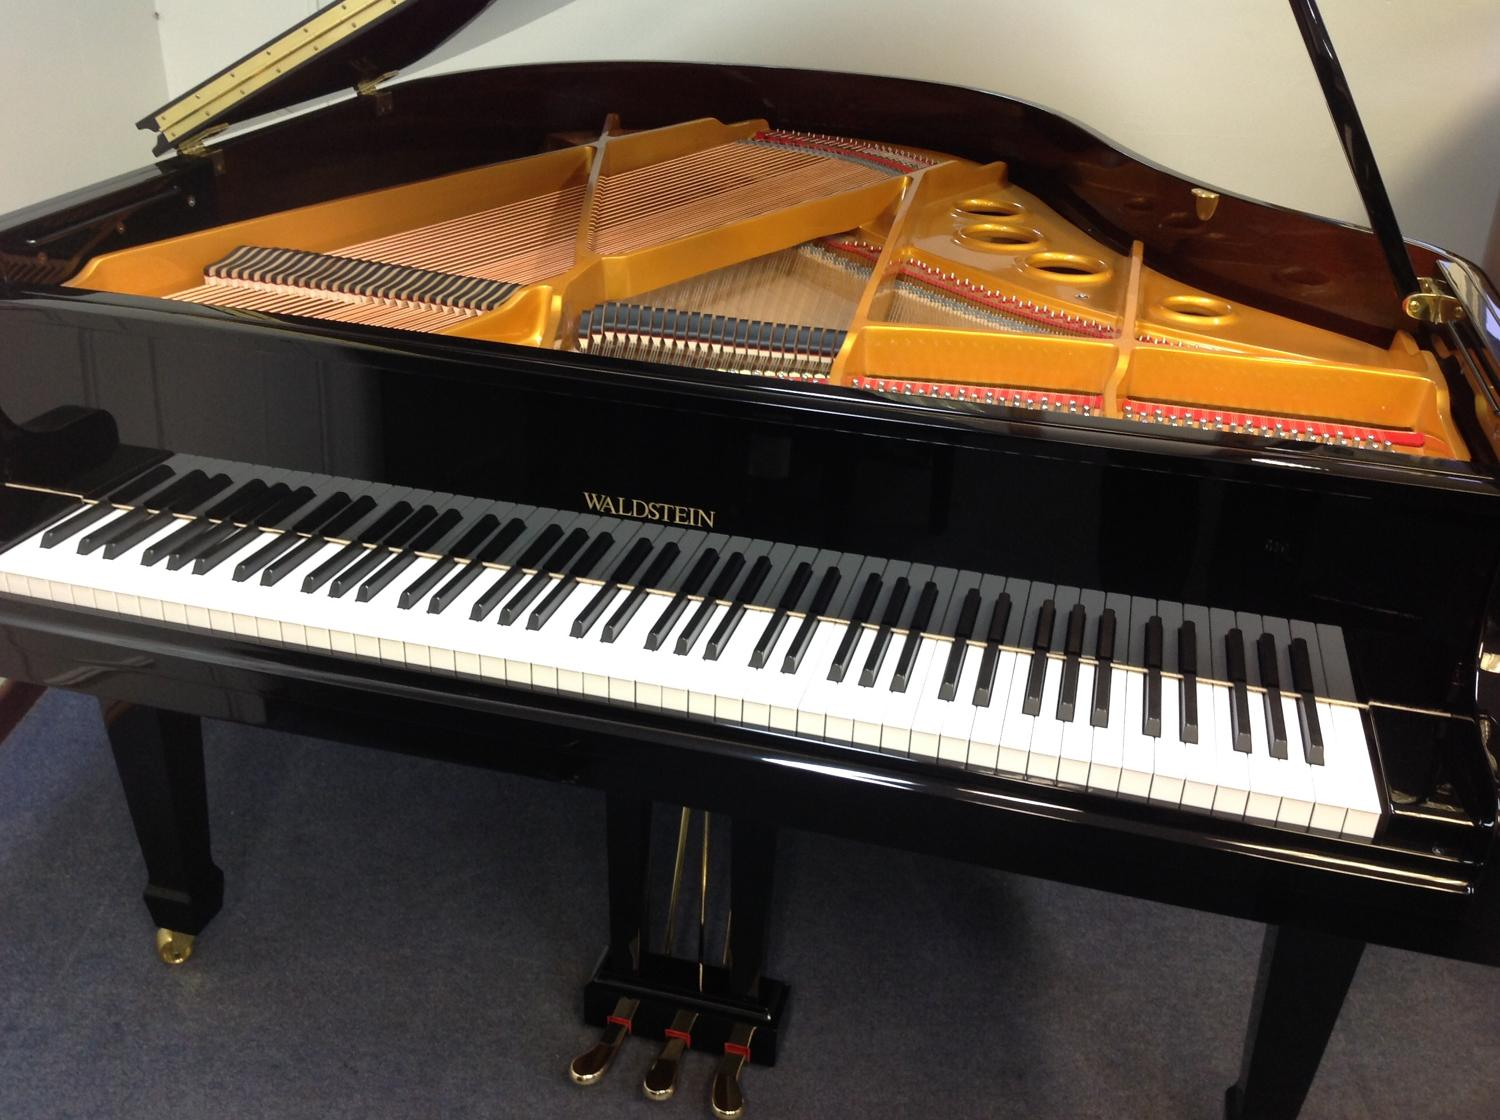 Waldstein baby grand piano in grand pianos for sale Size of baby grand piano